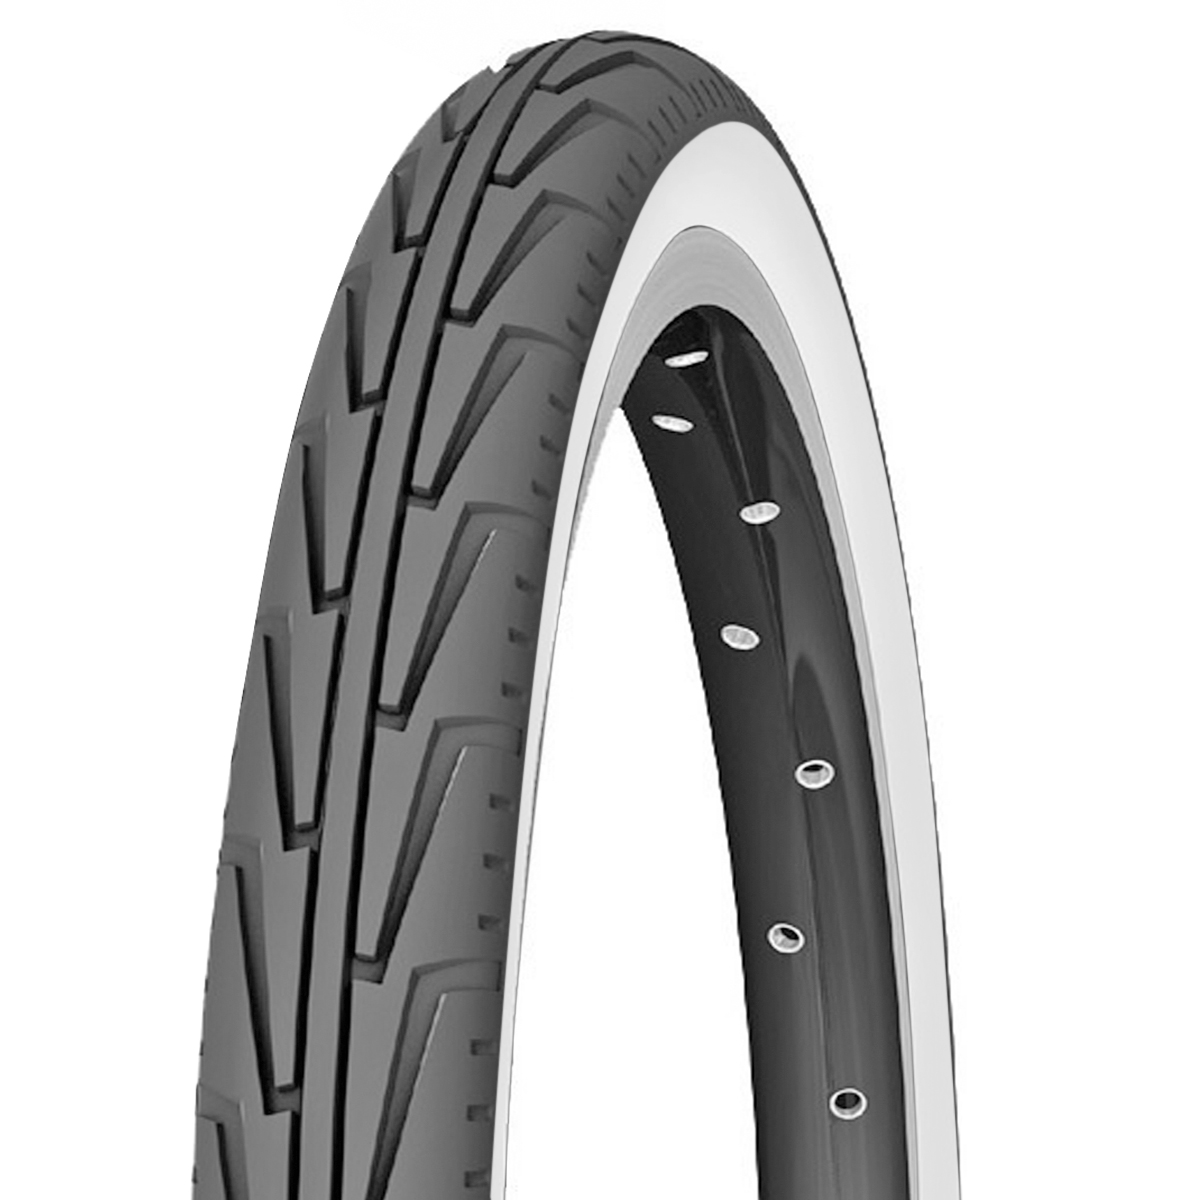 Pneu 24 x 1.3/8 Michelin City J. Noir/Blanc